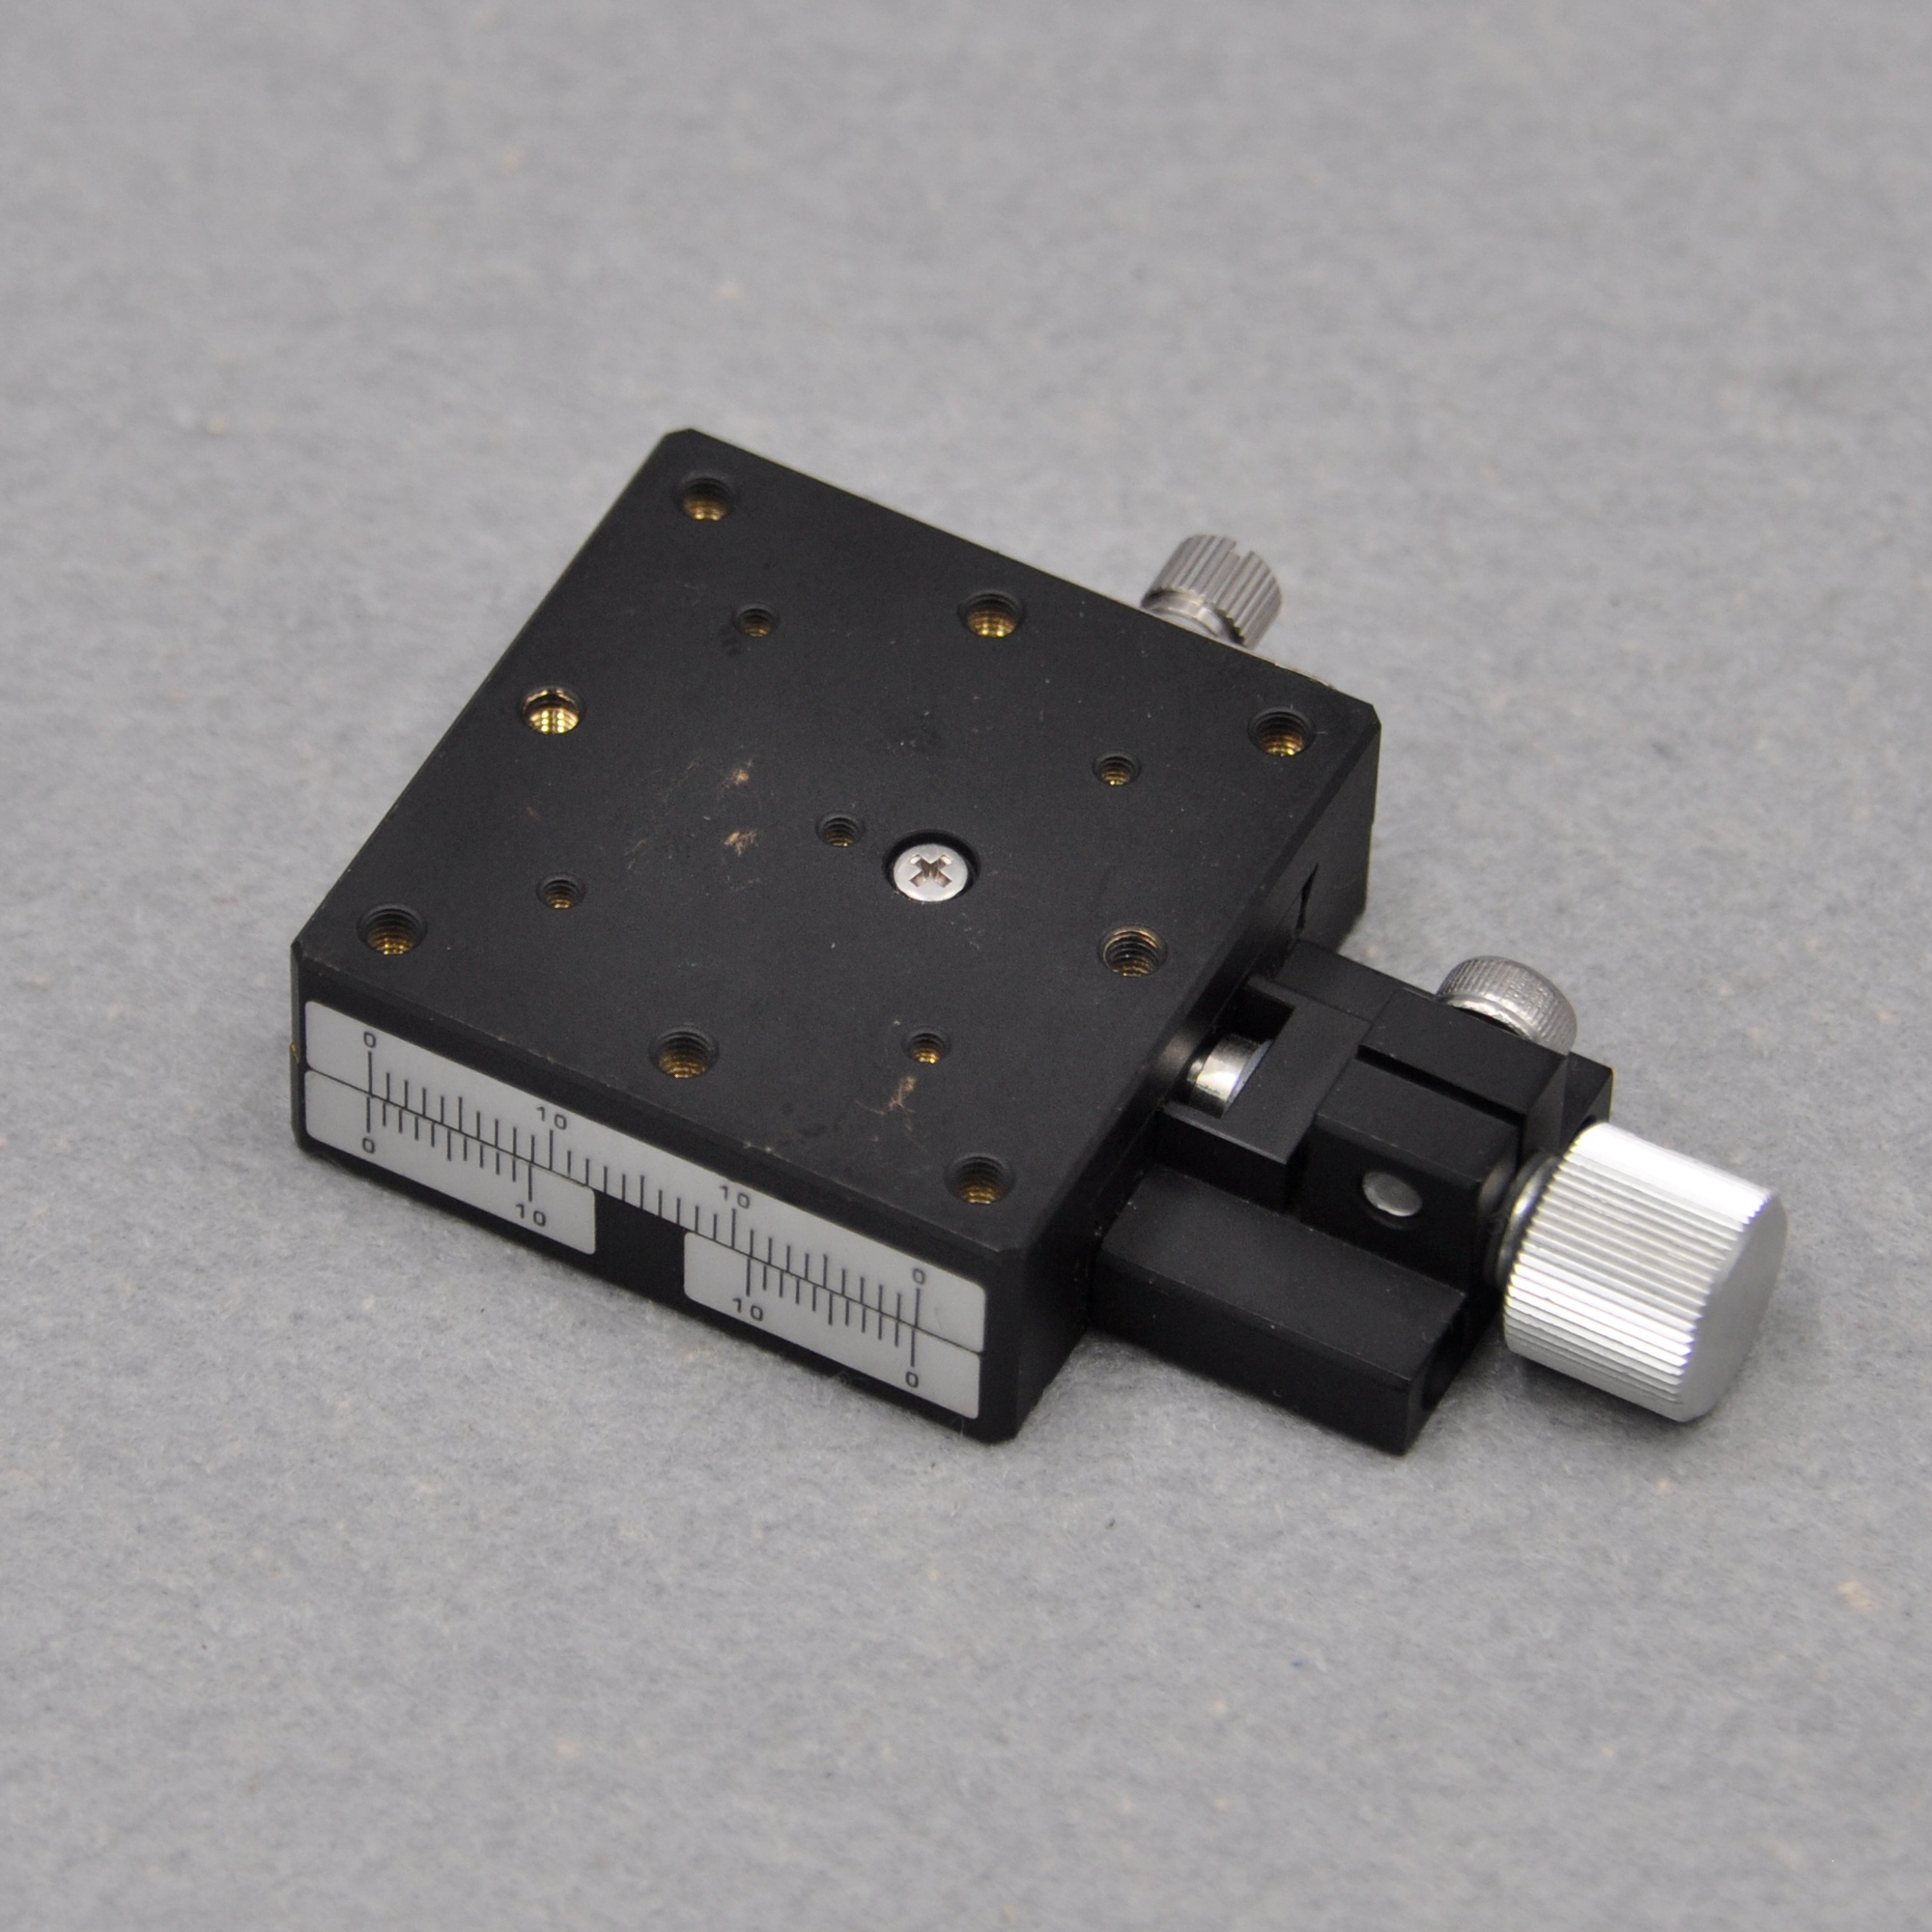 Misimi XEGCL40 Y-axis Optical Manual Precision Screw Dovetail Groove Fine-adjustment Displacement Slide Stroke Copper